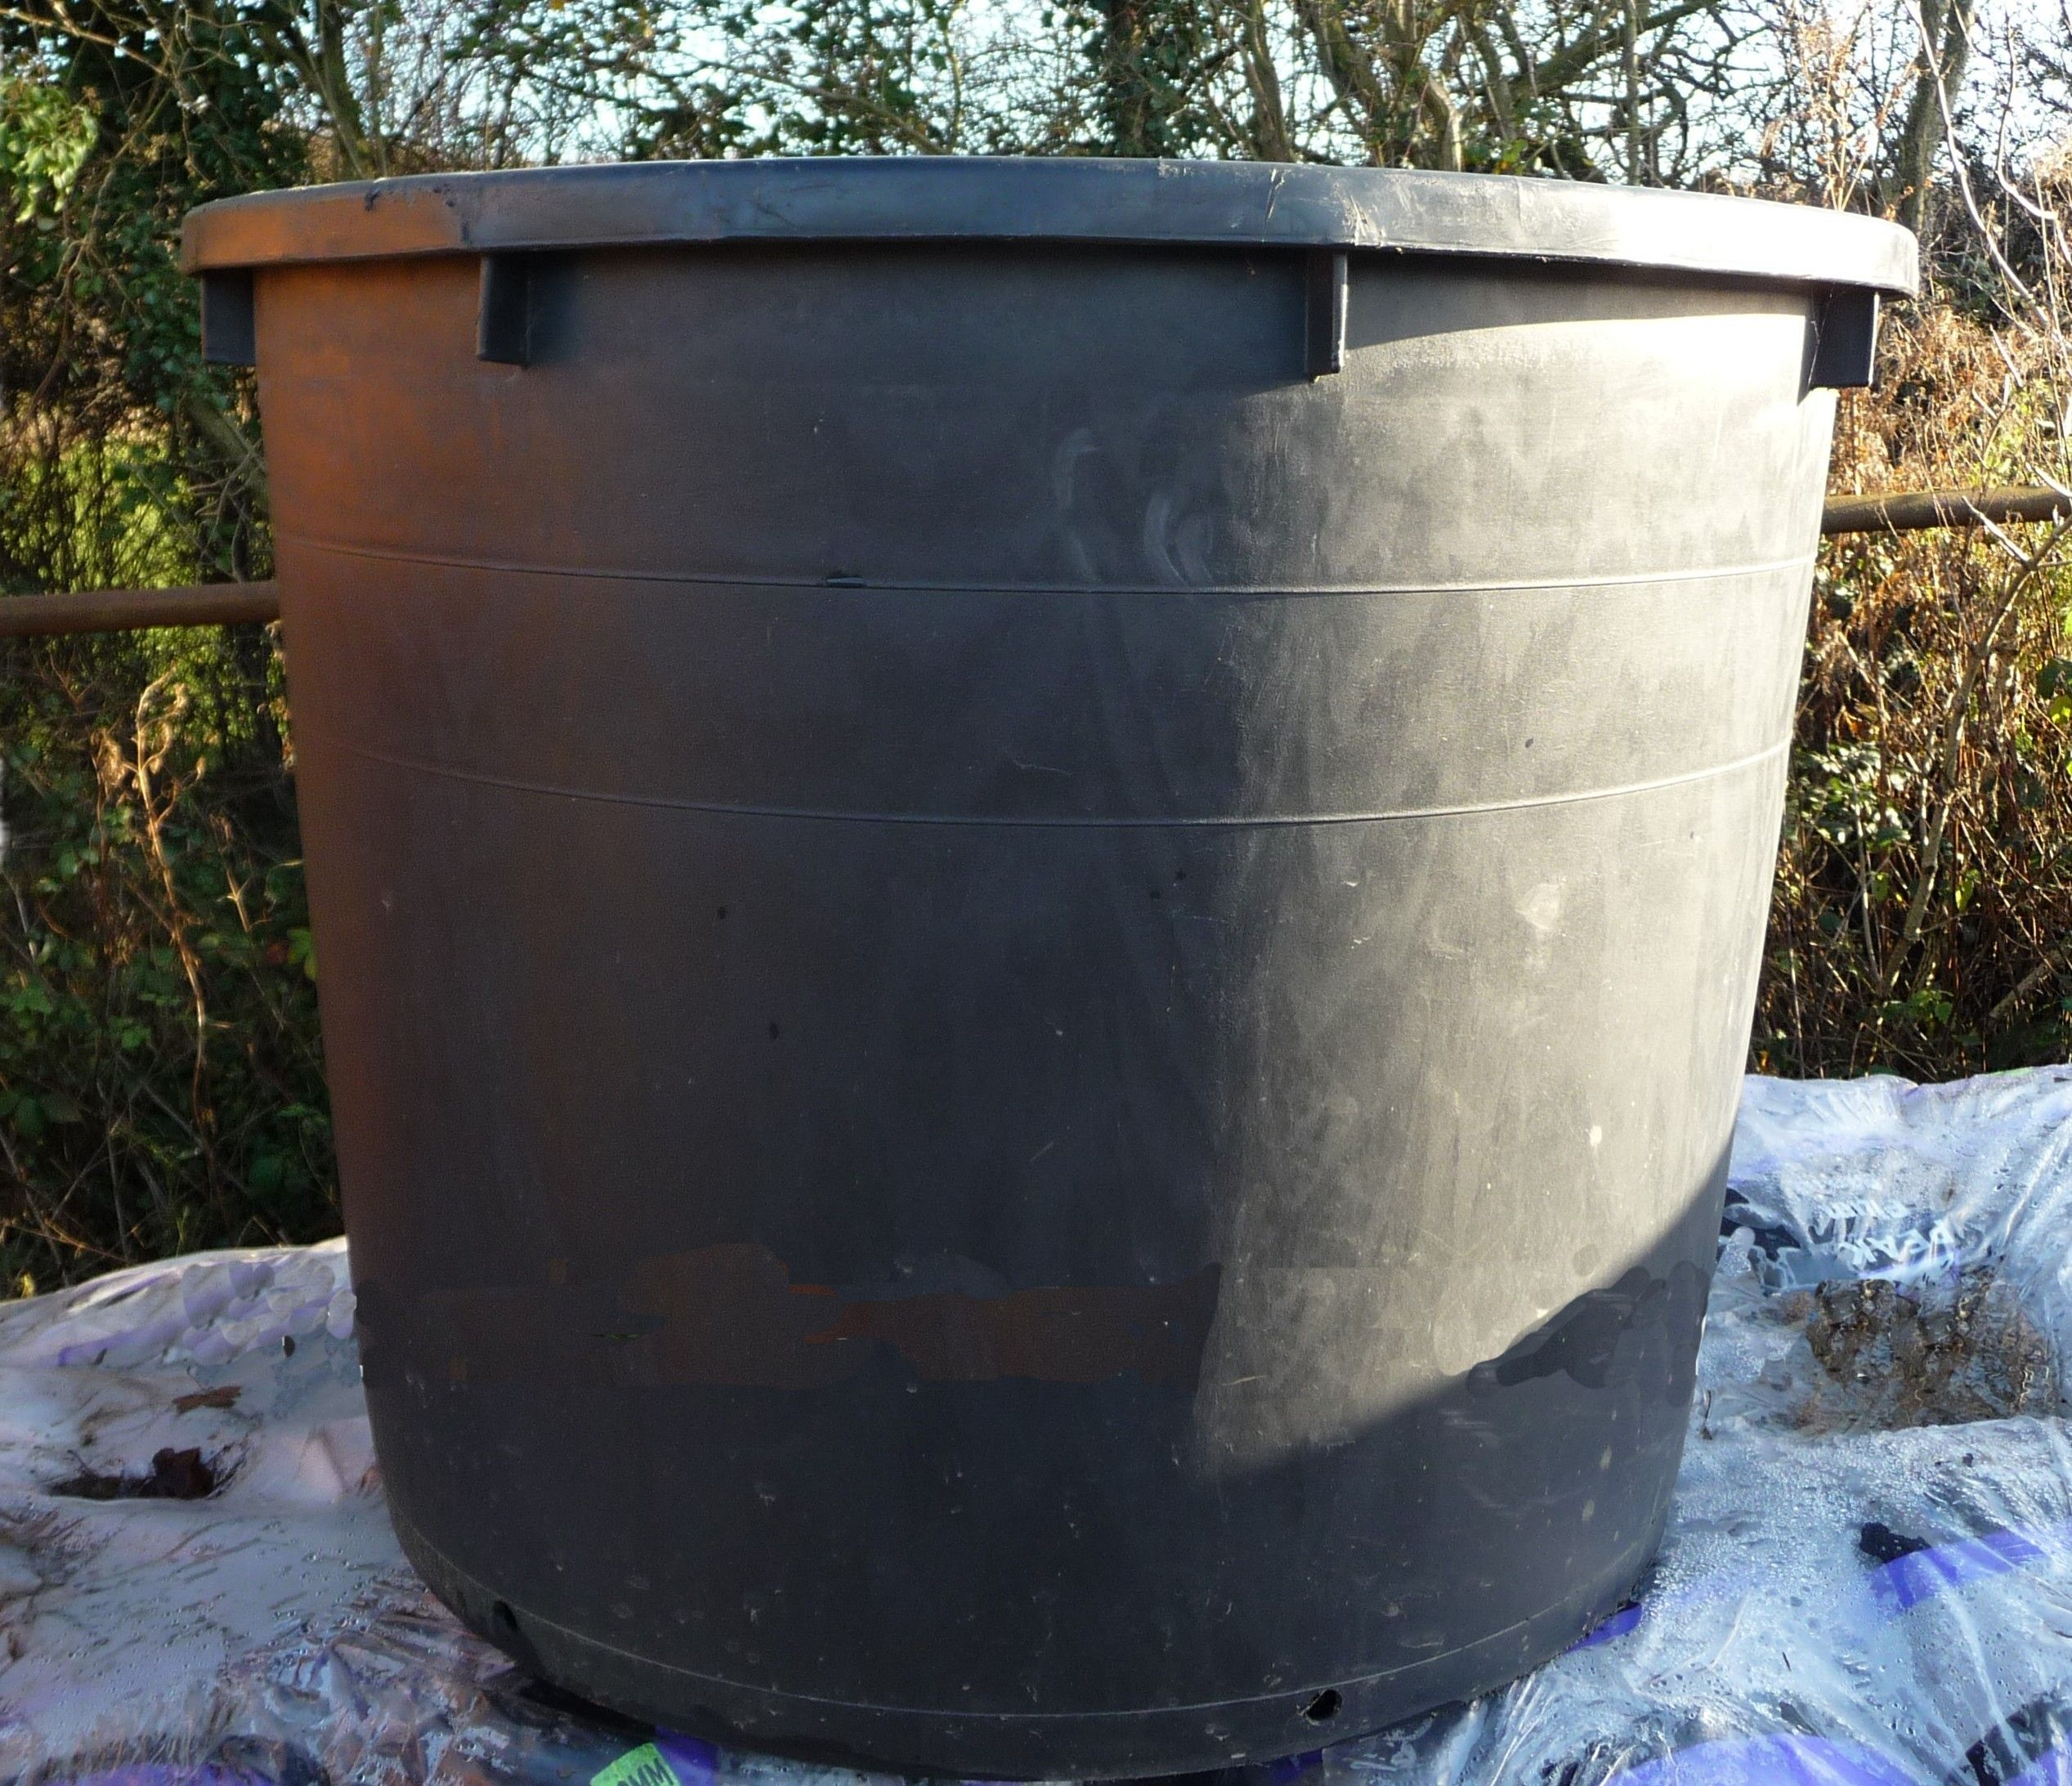 extra large plastic pot 500ltr black woodside garden centre pots to inspire. Black Bedroom Furniture Sets. Home Design Ideas